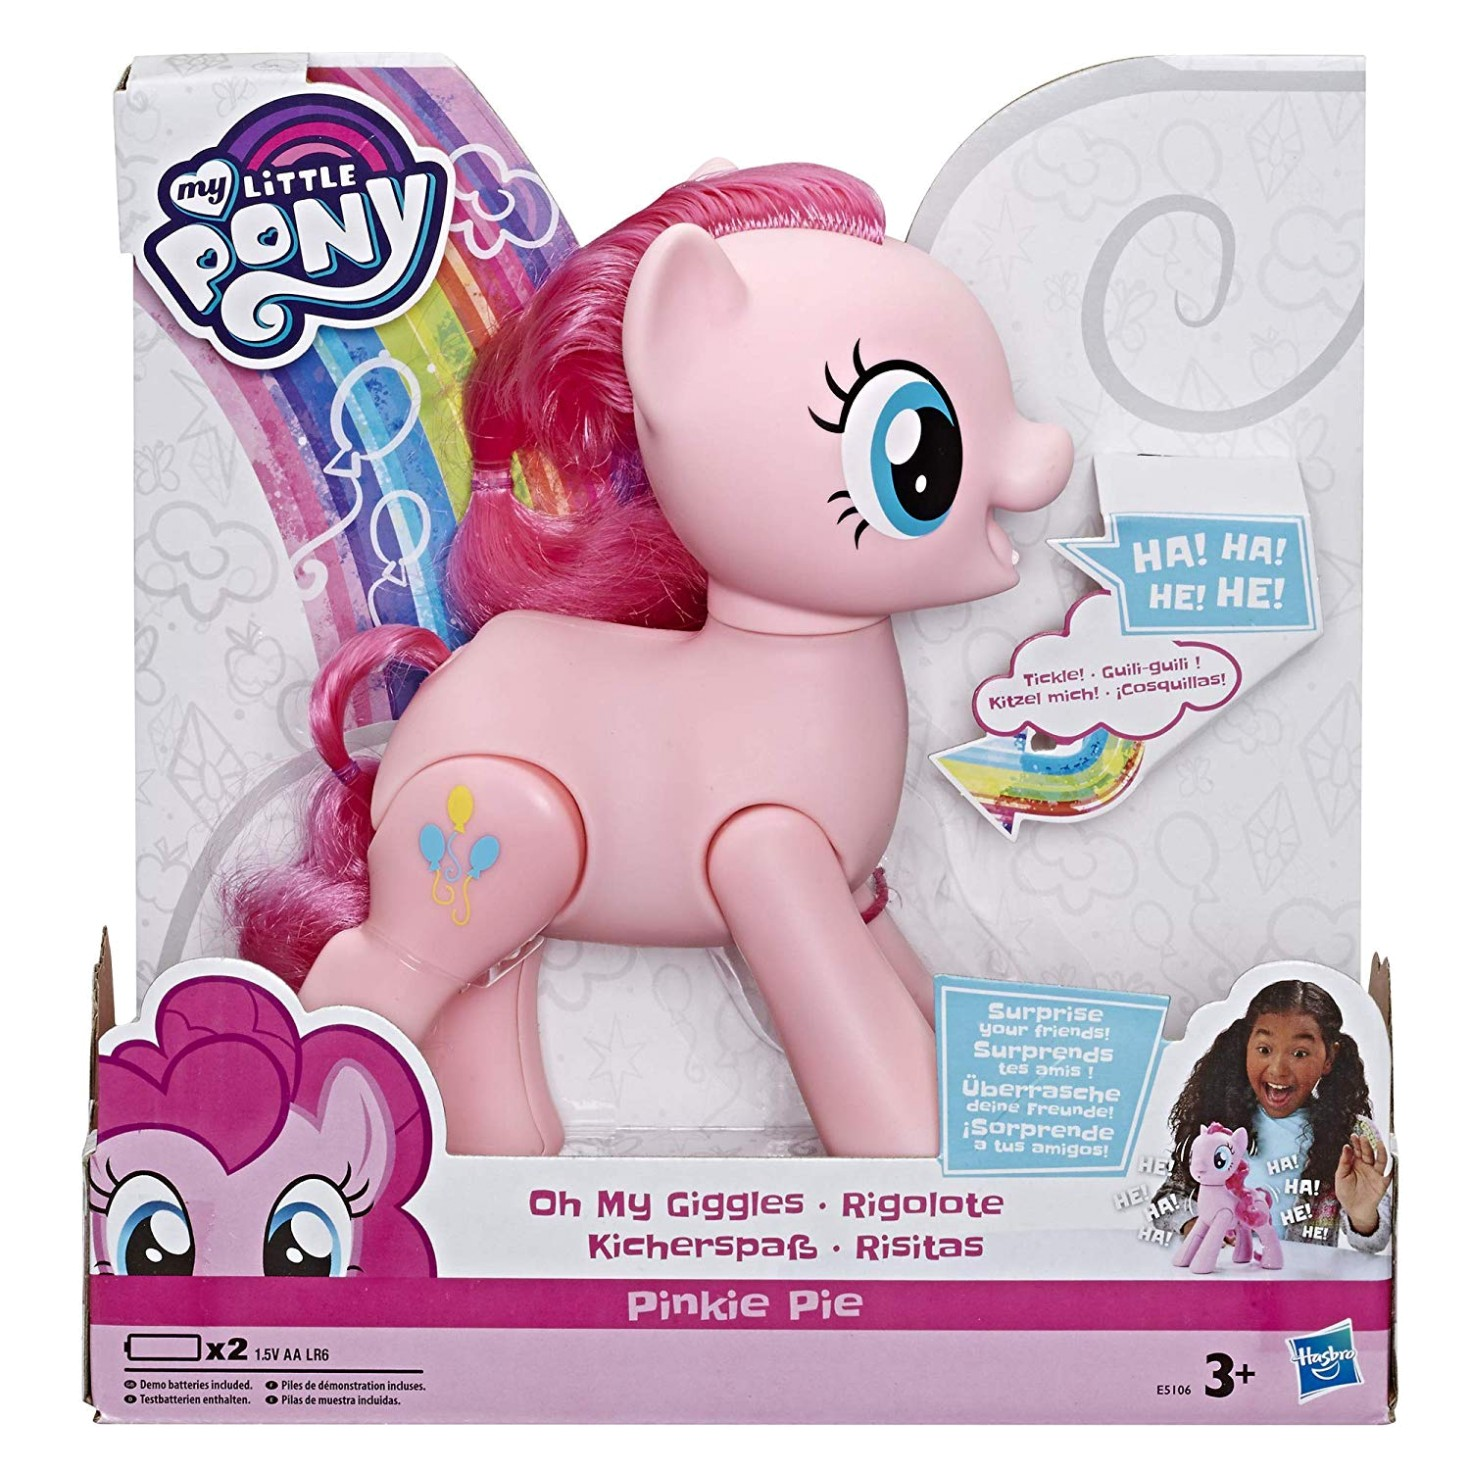 MY LITTLE PONY OH MY GIGGLES